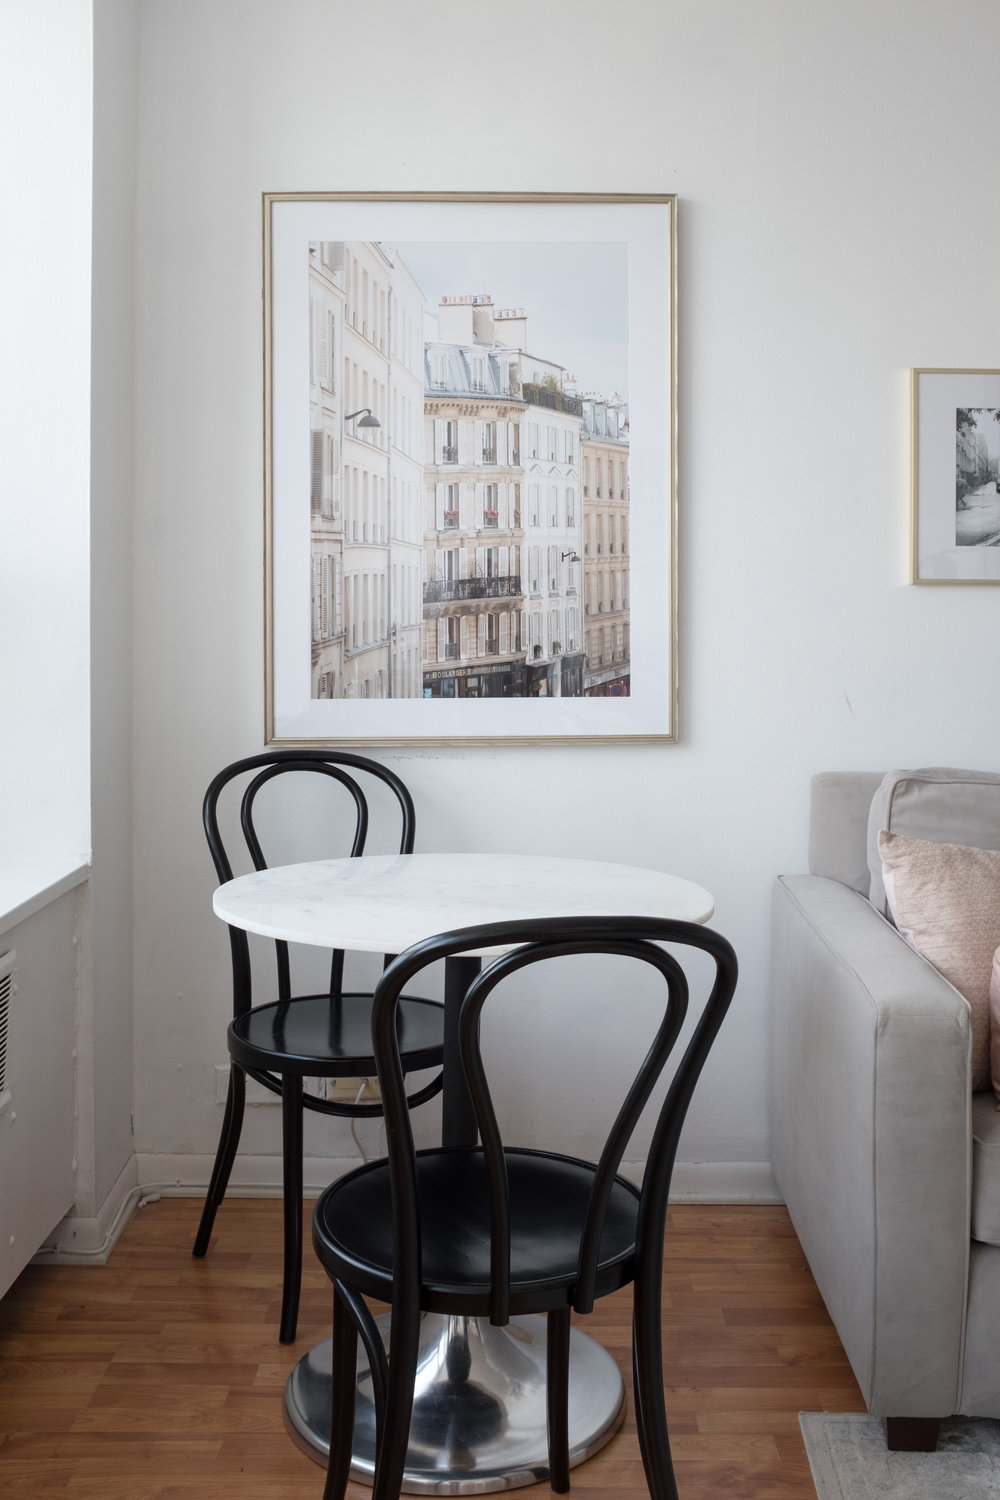 montmartre paris print by rebecca plotnick